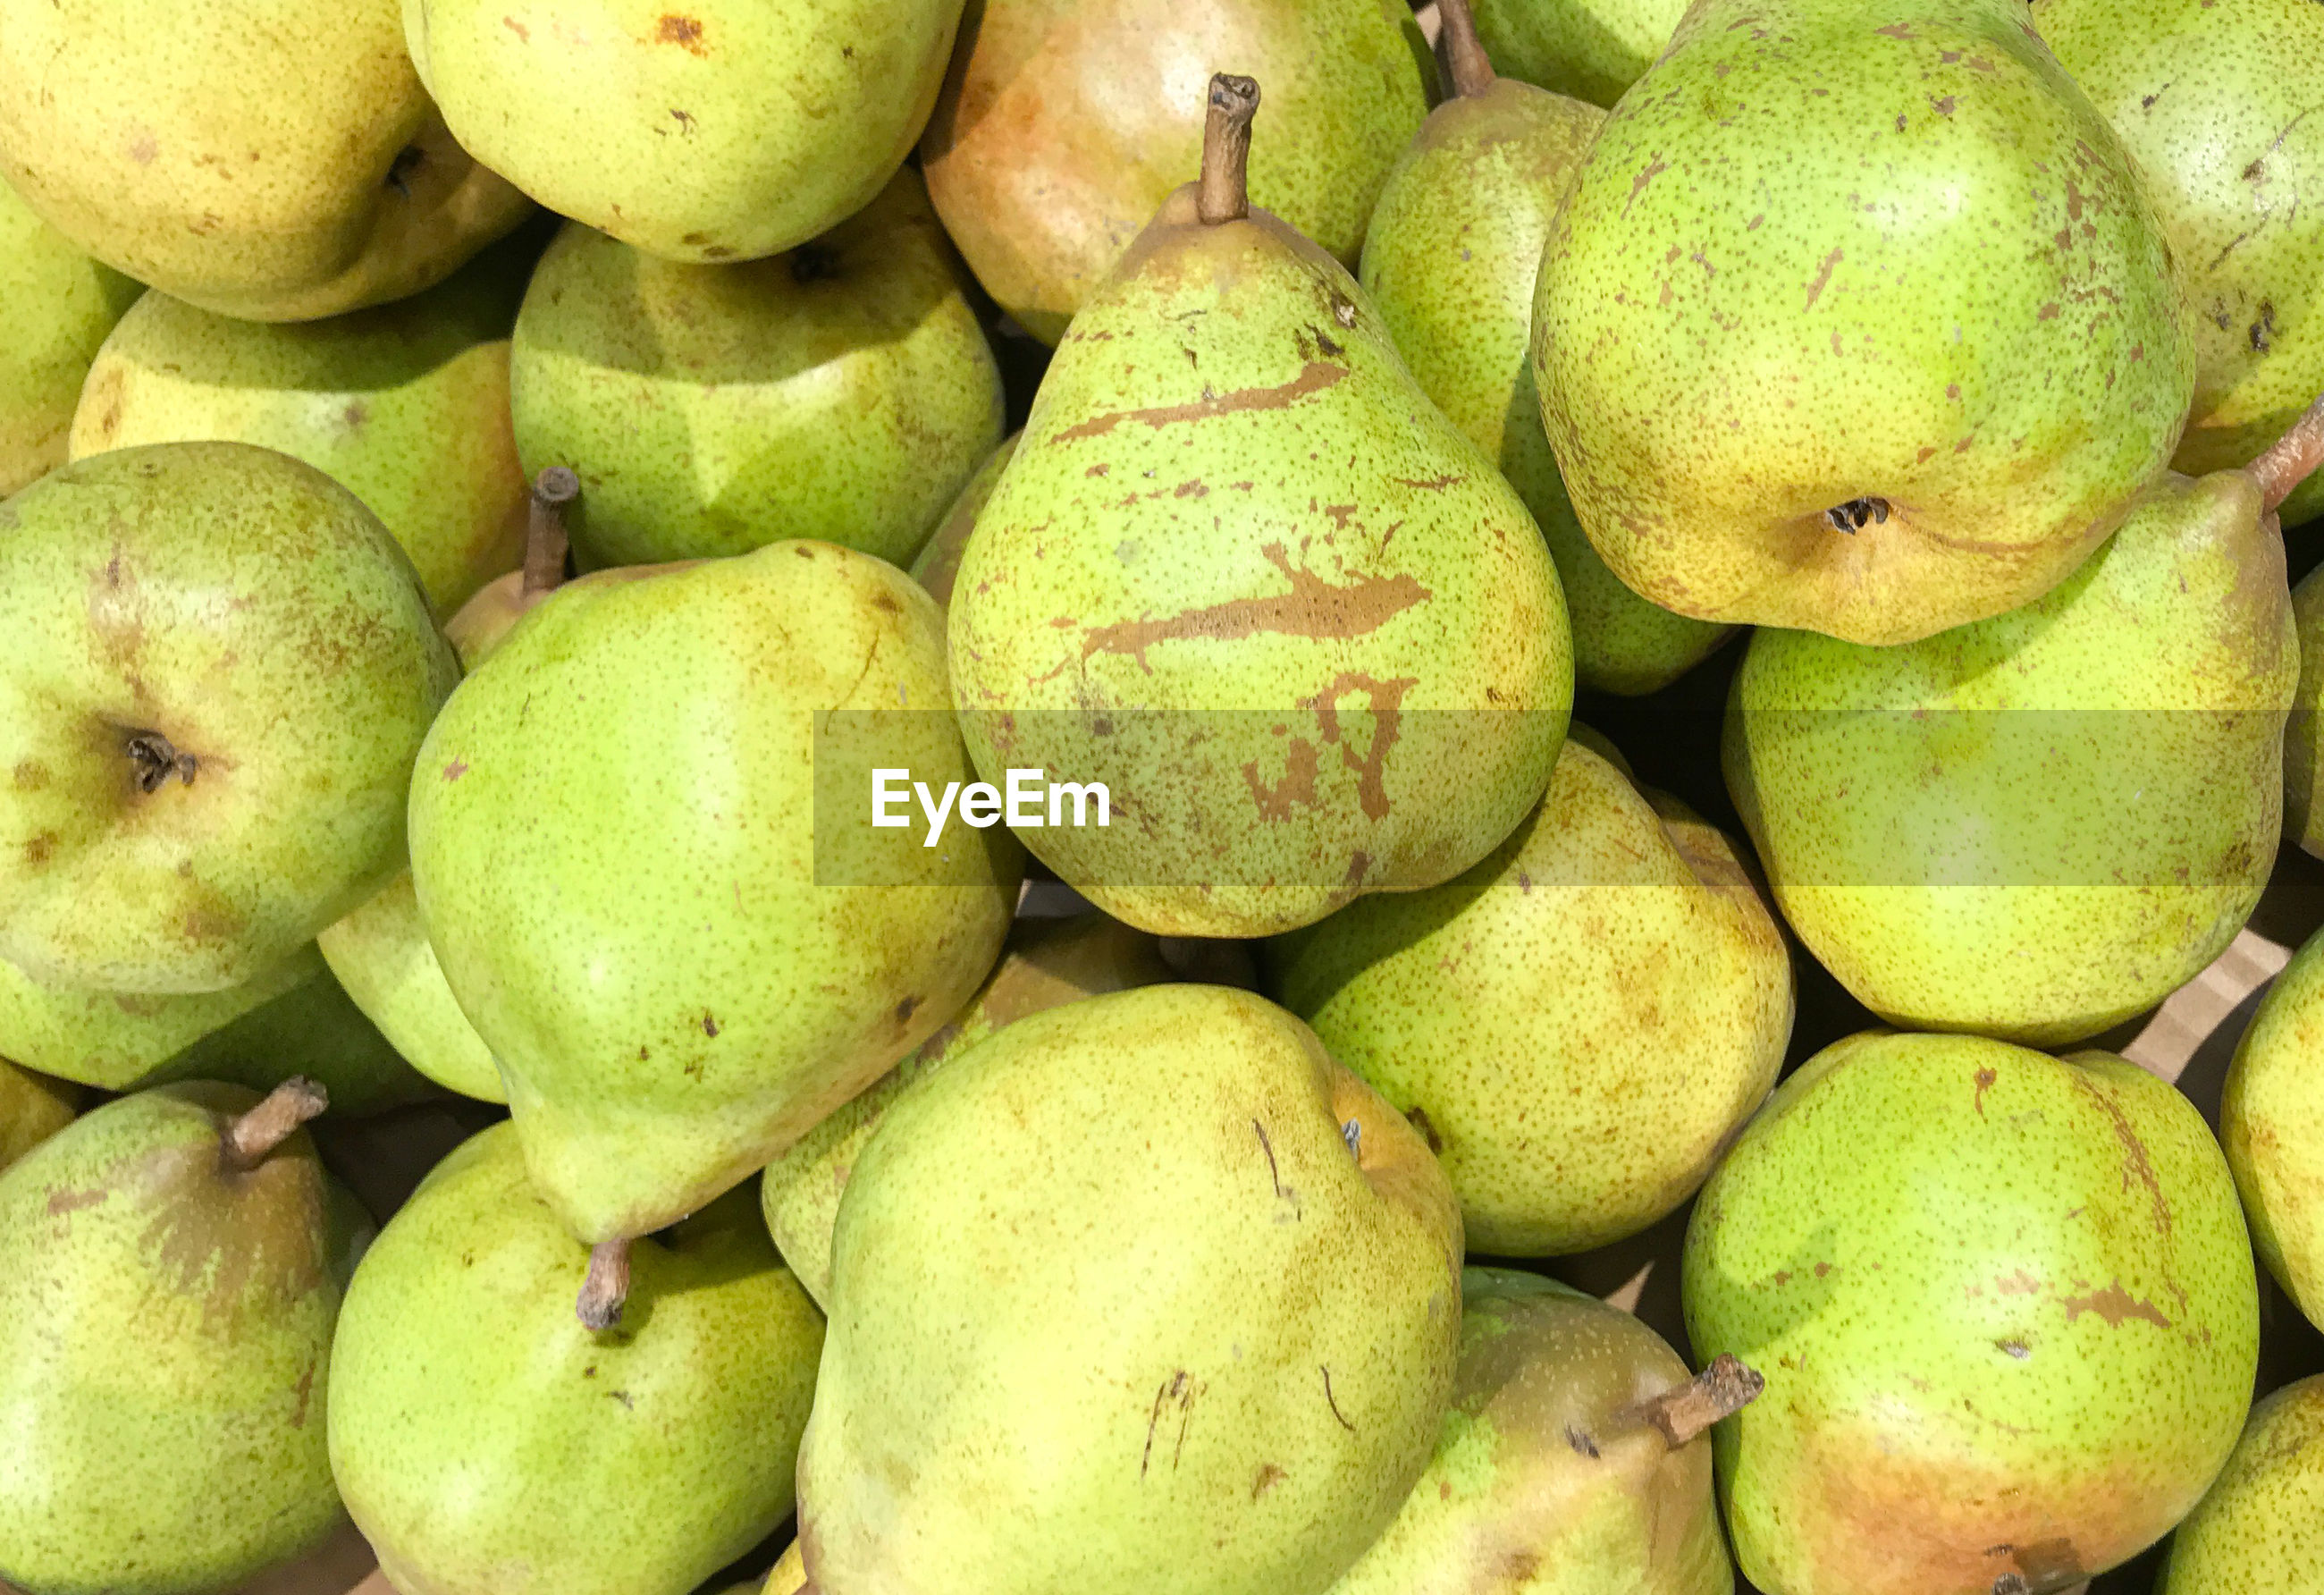 Close-up of pears on the market